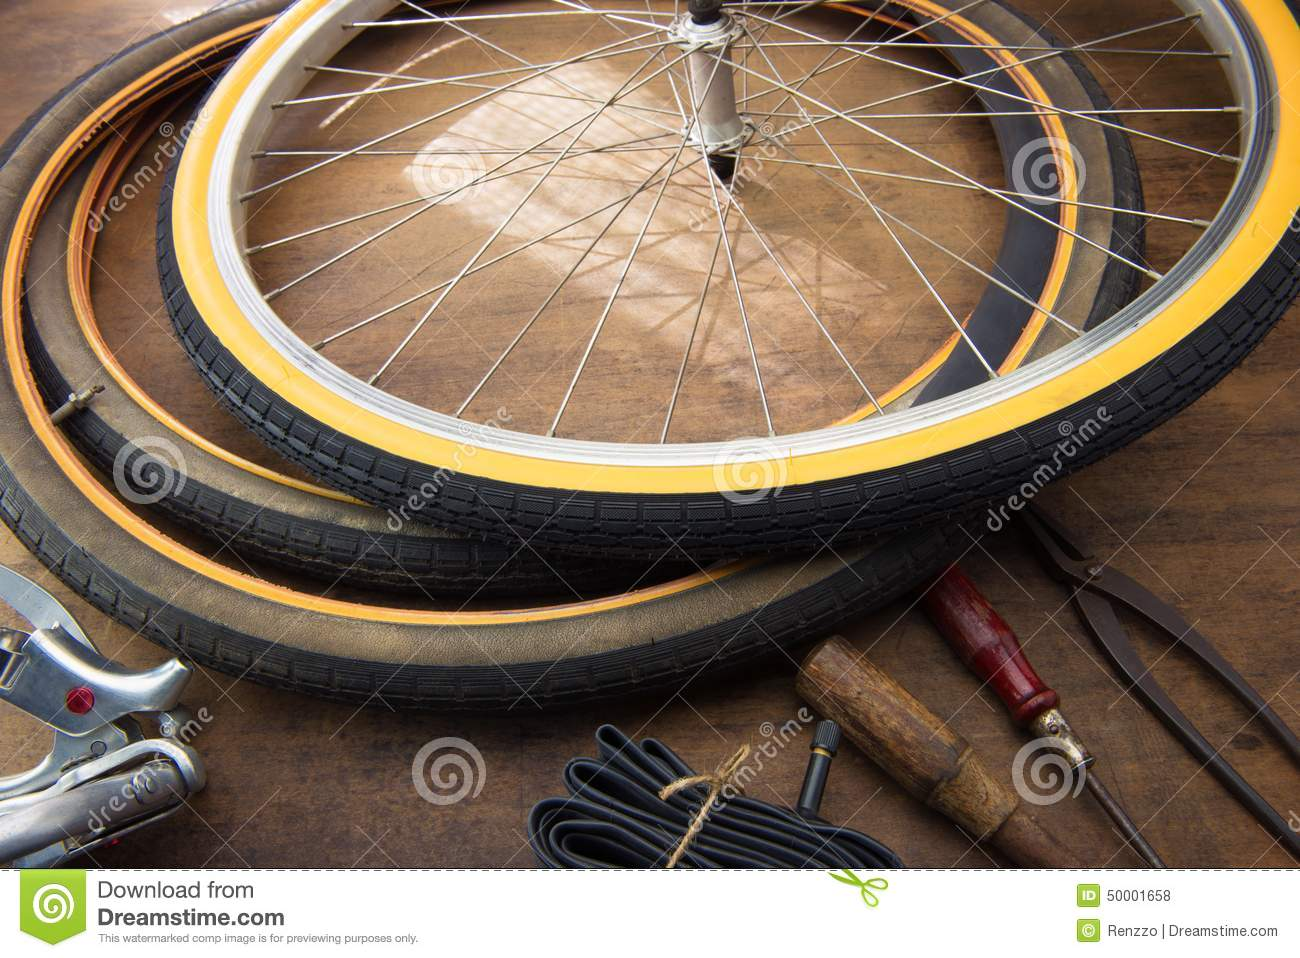 Bicycle Repair Repairing Or Changing A Tire Of An Vintage Bicycle